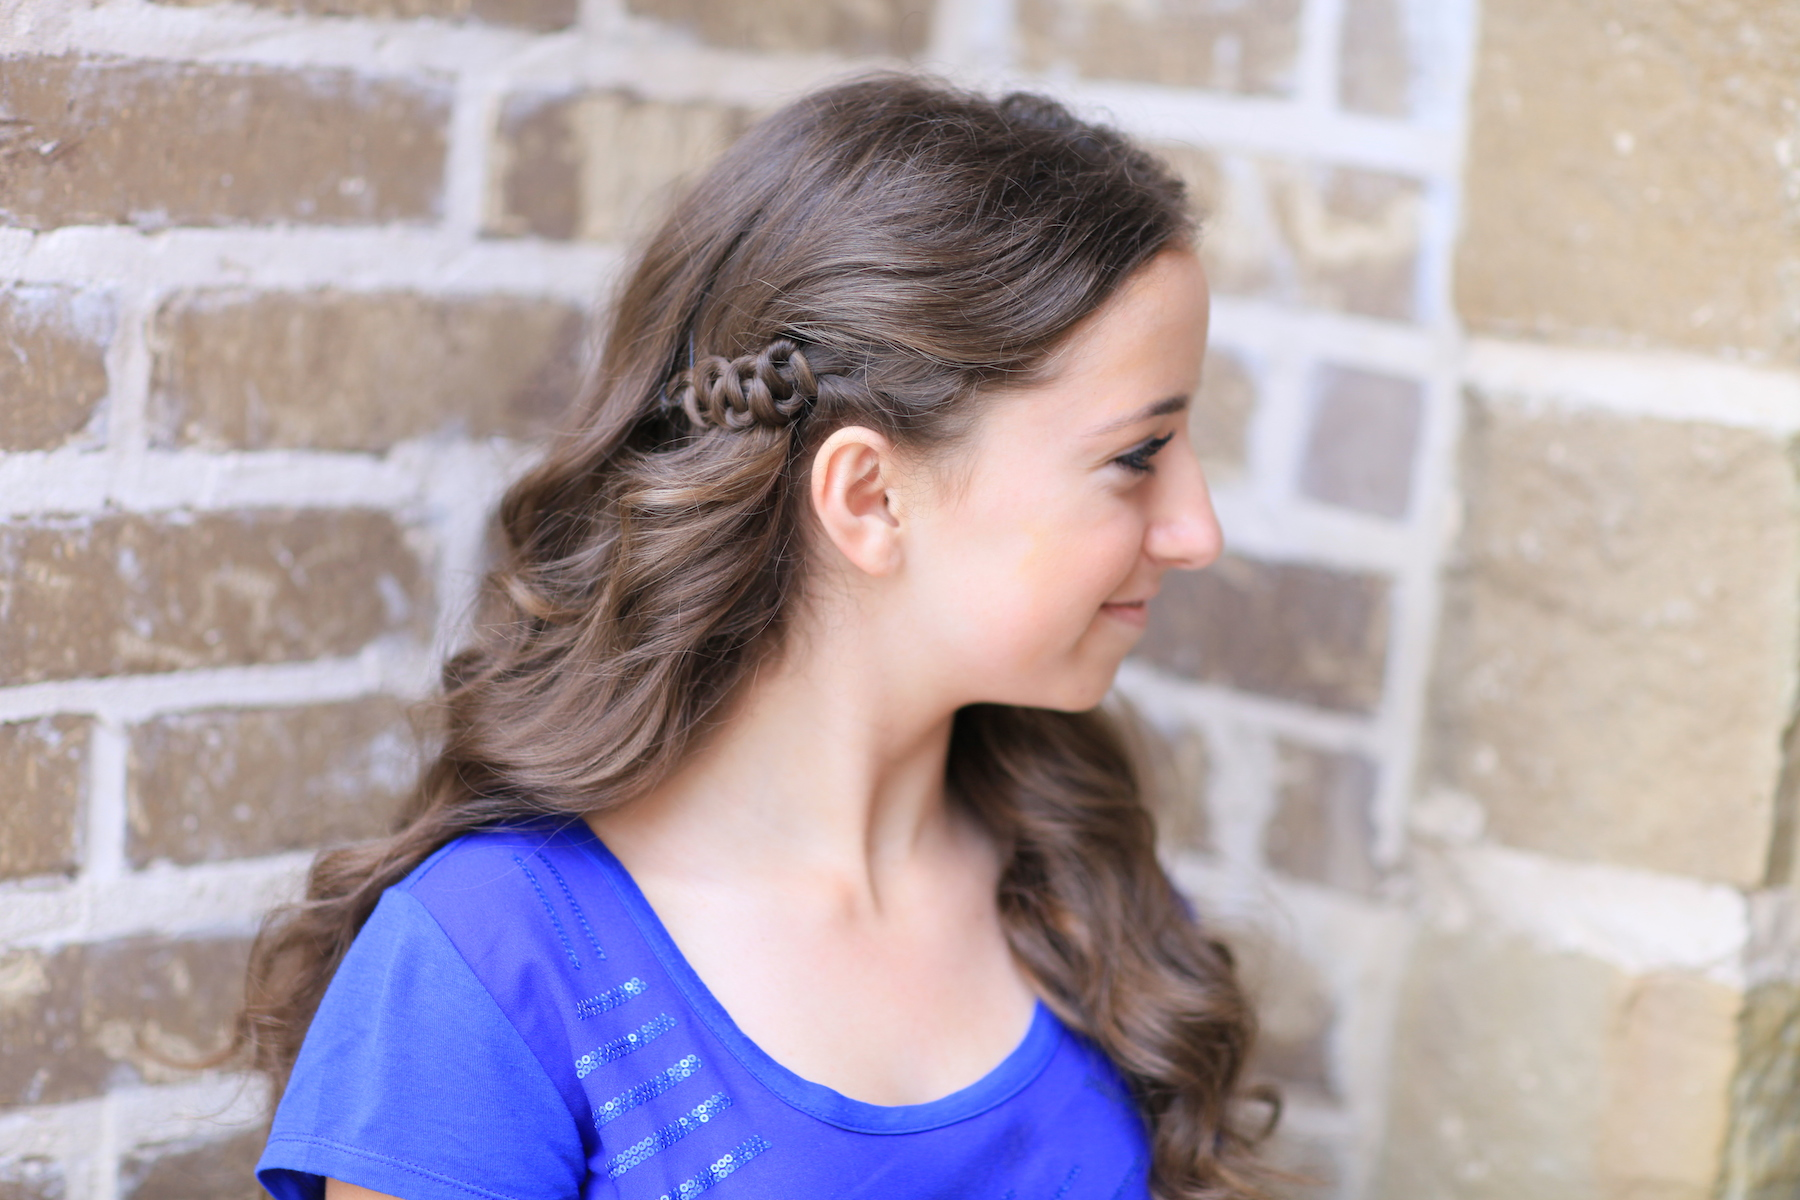 Phenomenal Hairstyles For School Concerts Short Hairstyles For Black Women Fulllsitofus